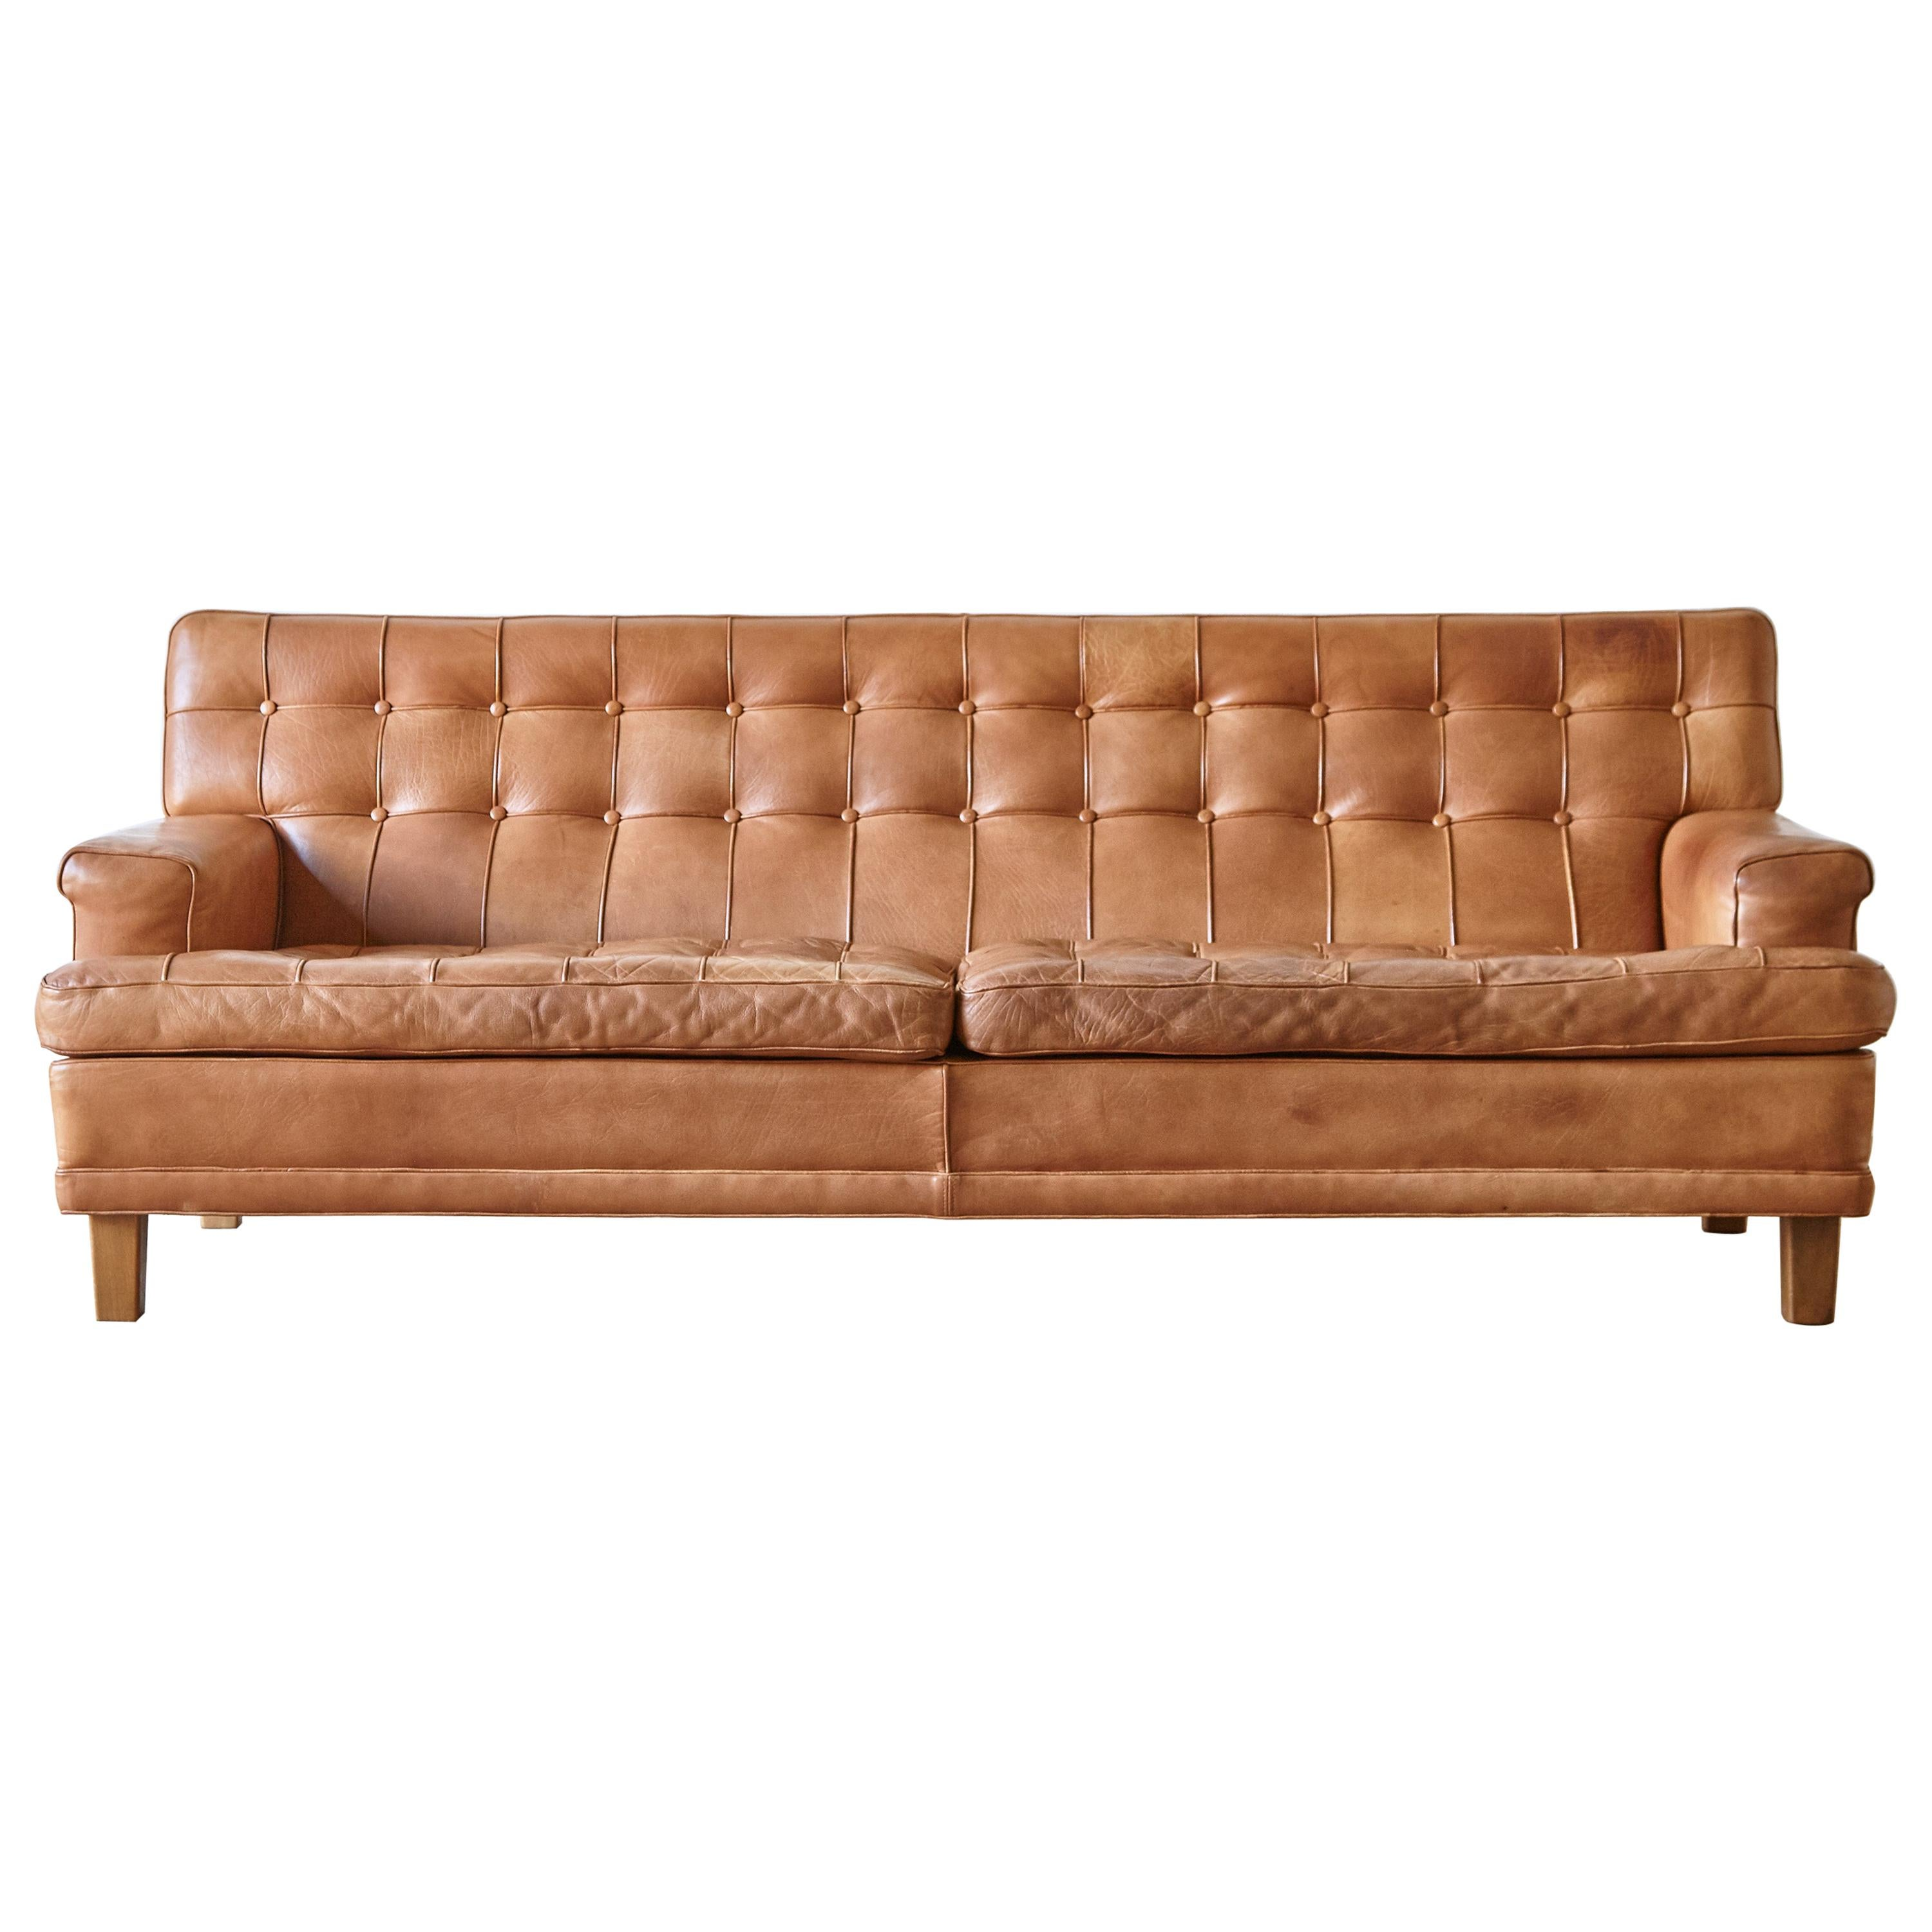 Arne Norell Leather Merkur / Mexico Sofa, Sweden, Norell Mobel, 1970s